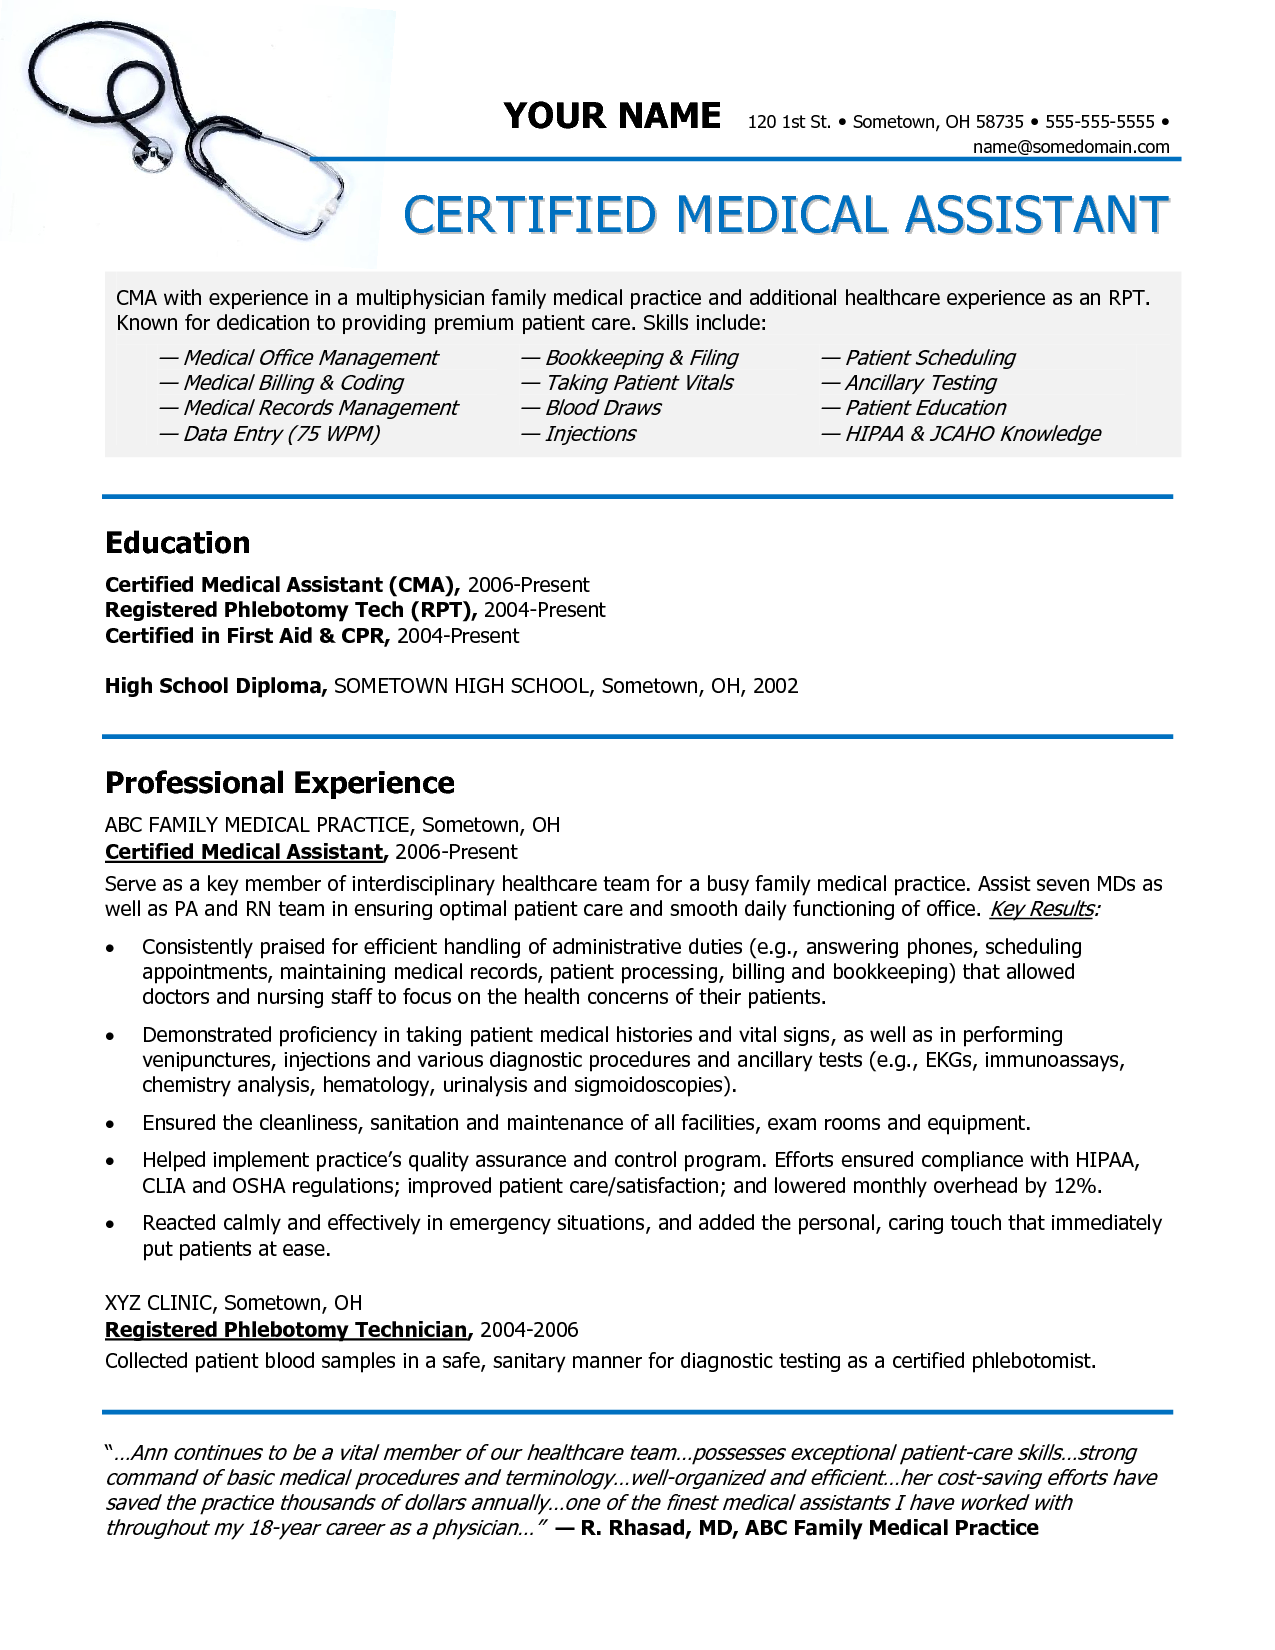 Medical Assistant Resume Entry Level Examples 18 Medical Assistant .  Phlebotomist Duties Resume